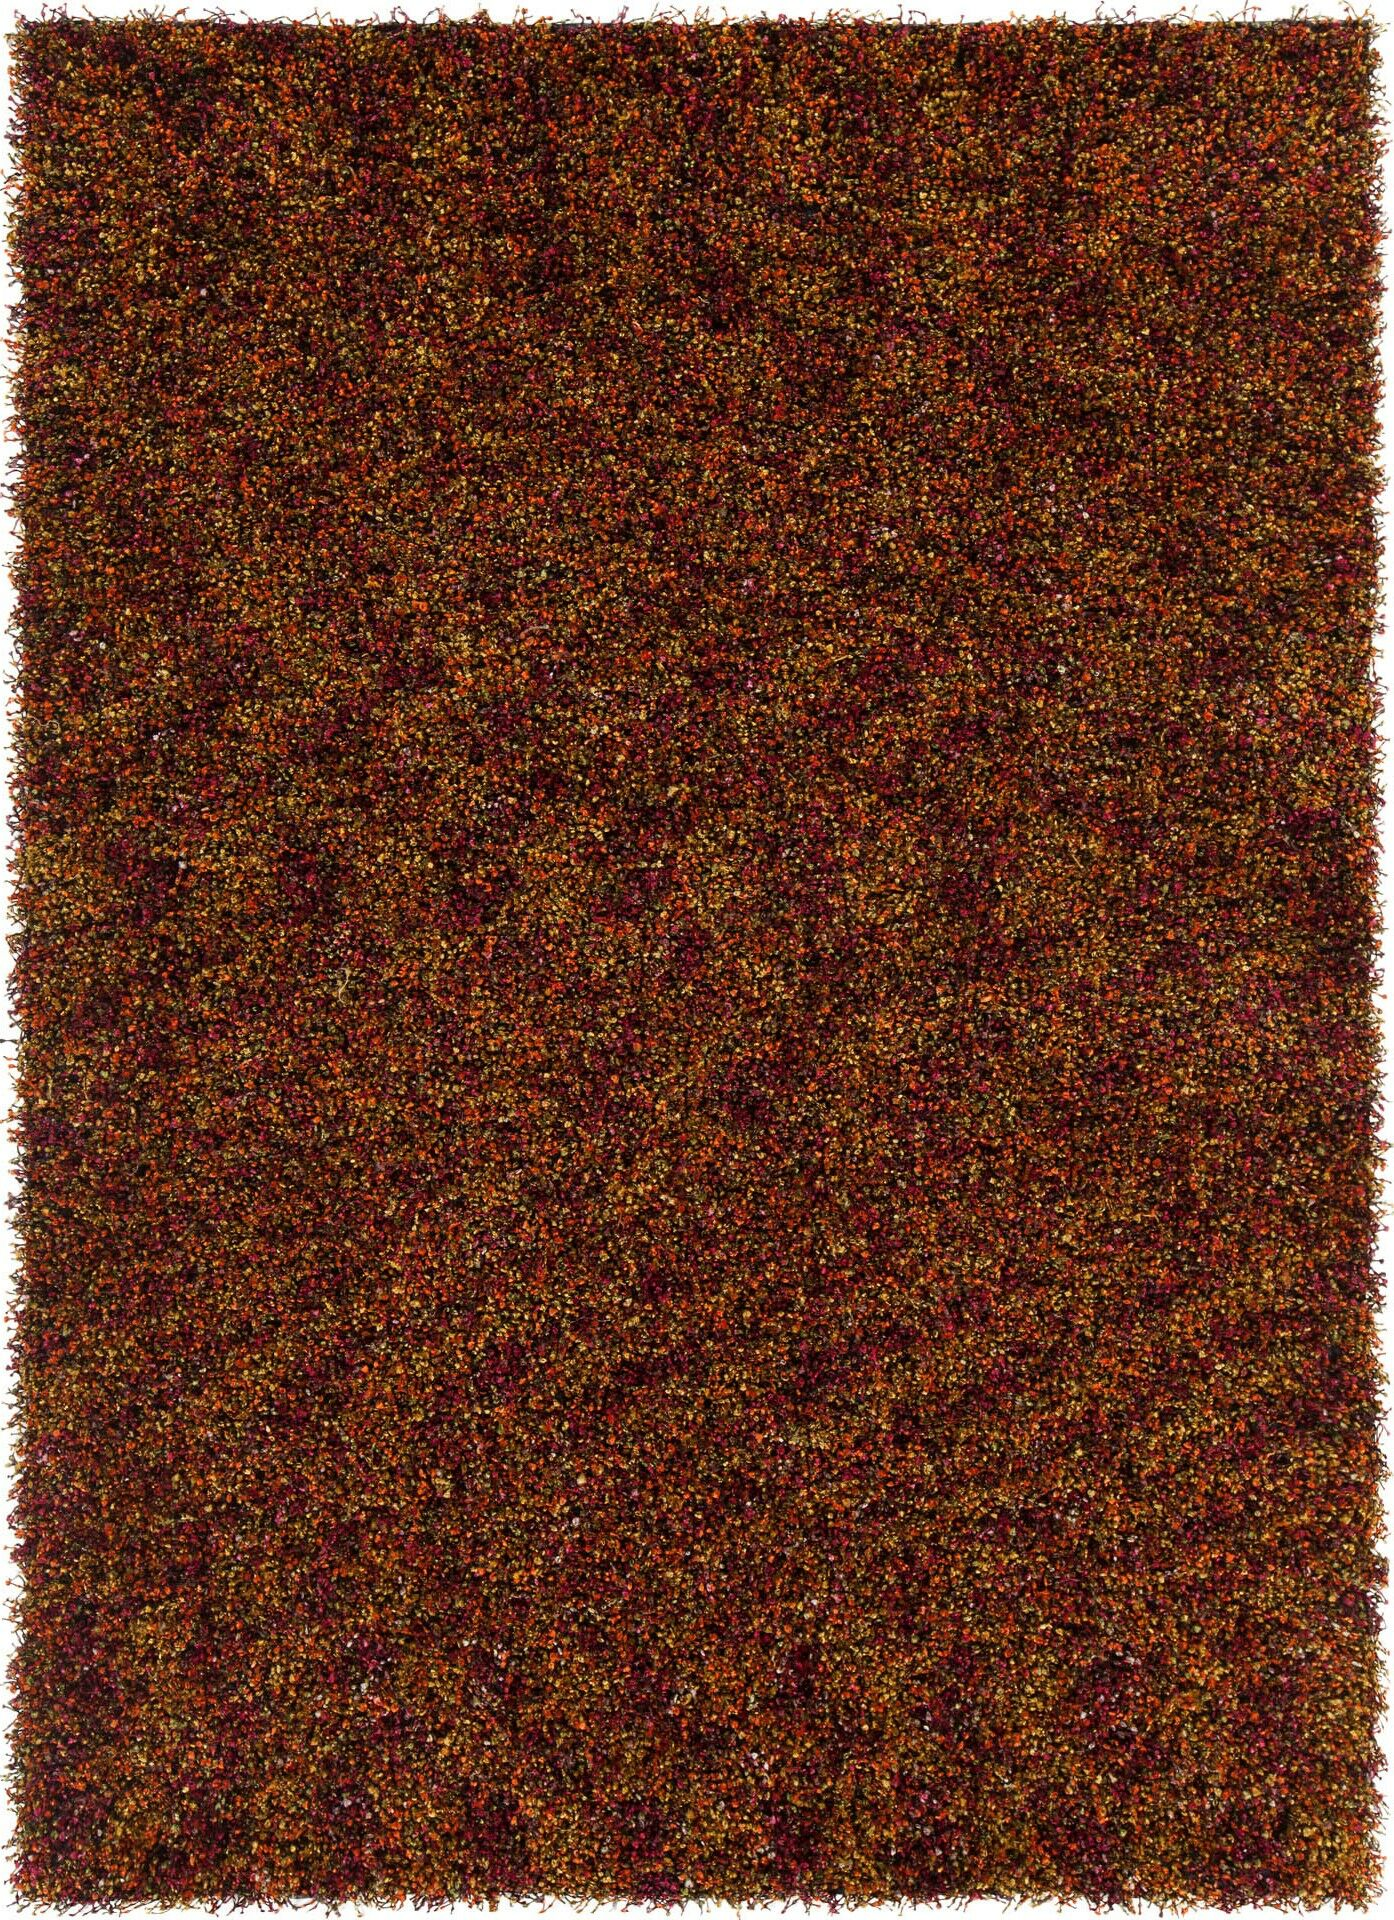 Stickland Textured Shag Red/Orange Area Rug Rug Size: 5' x 7'